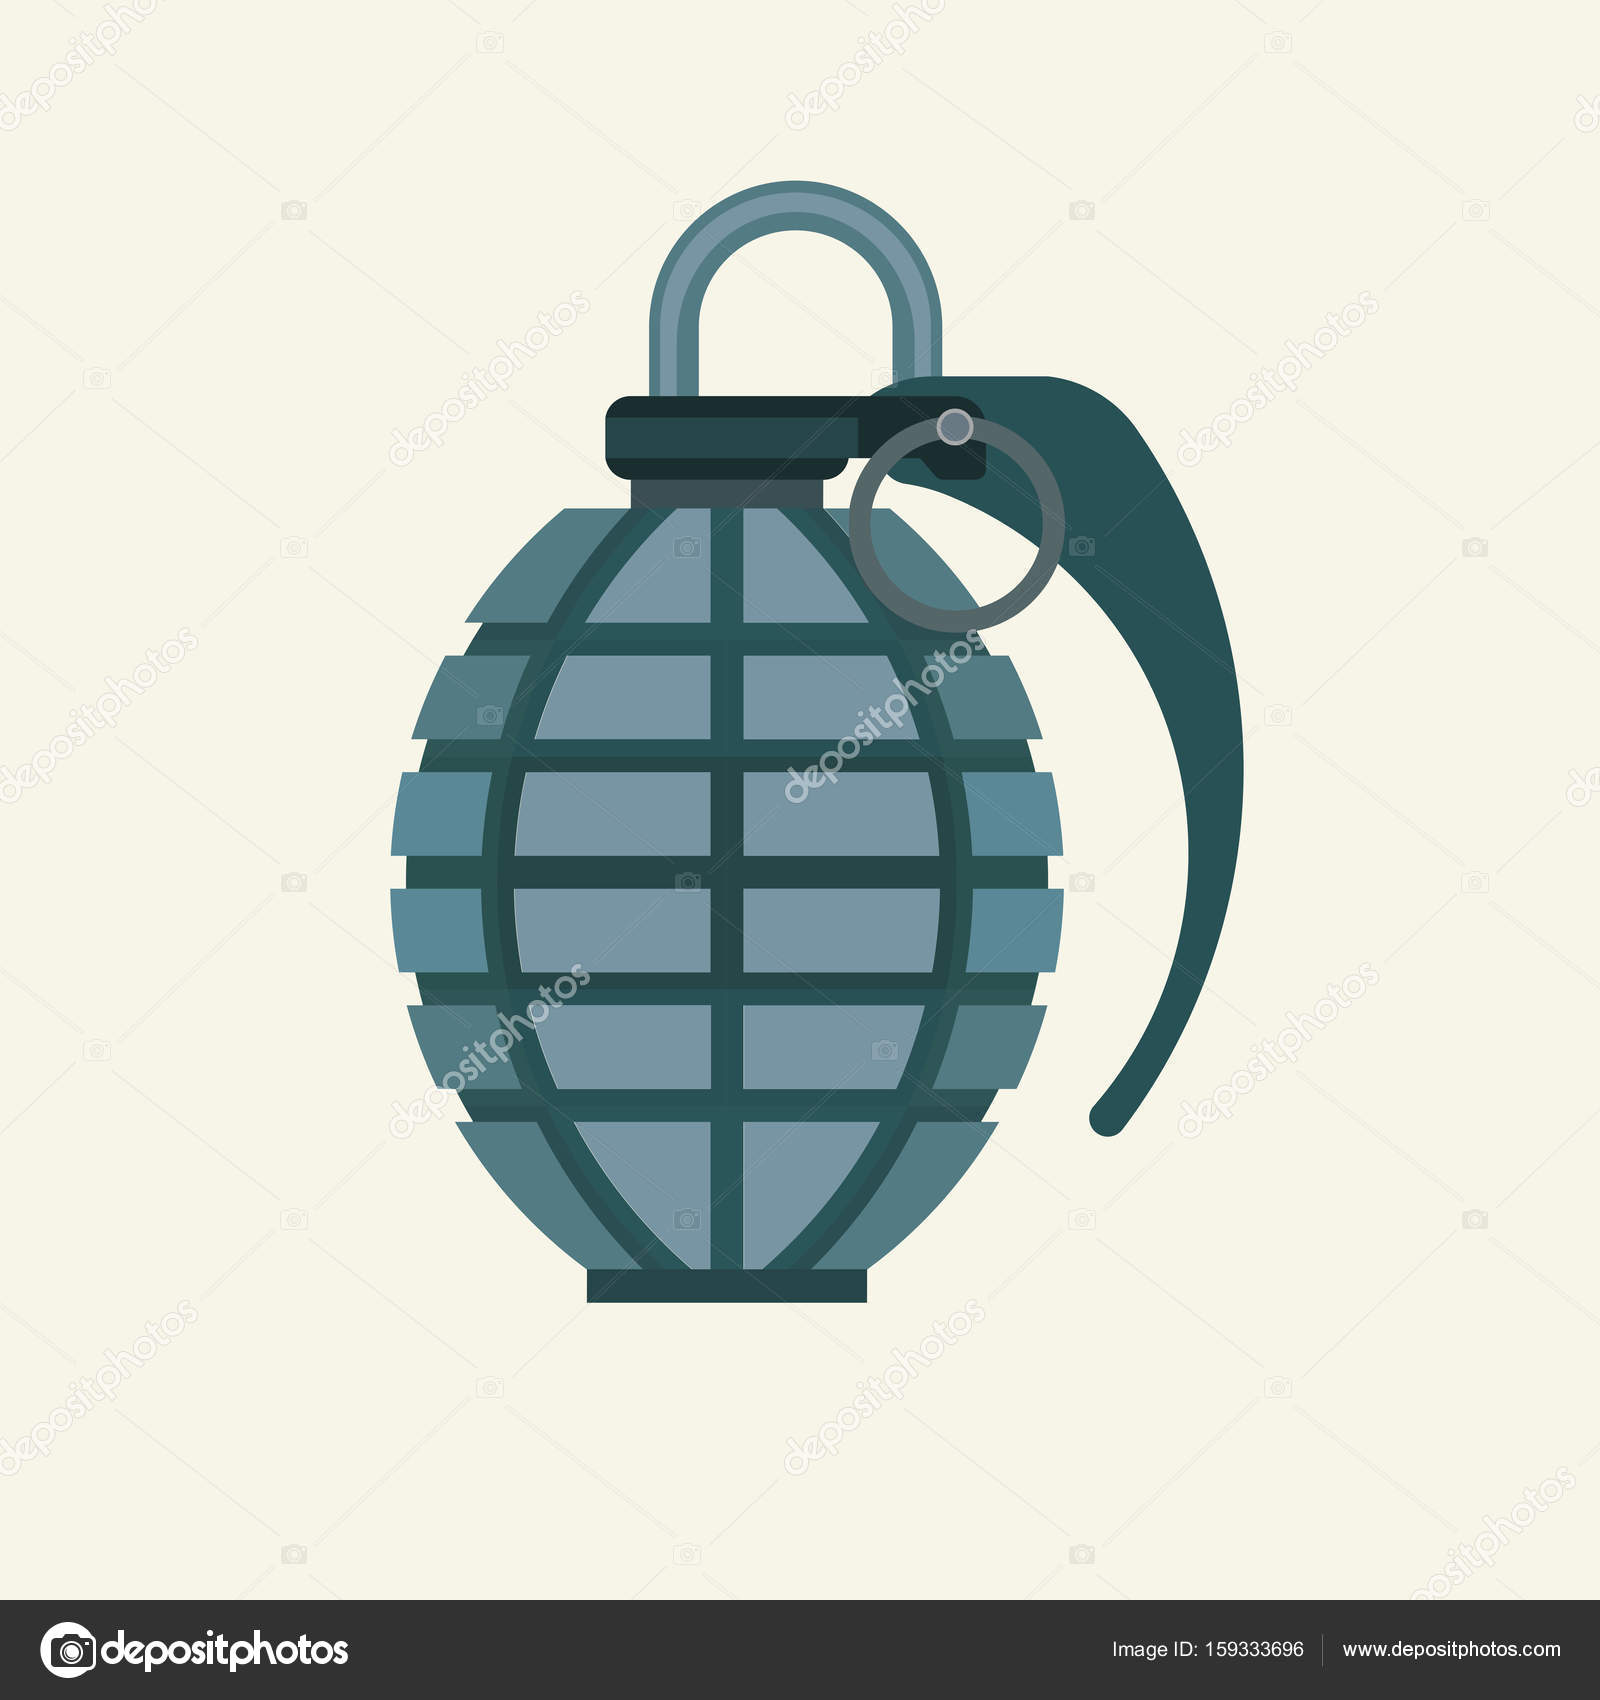 Military army explosive fragme — Stock Vector #159333696